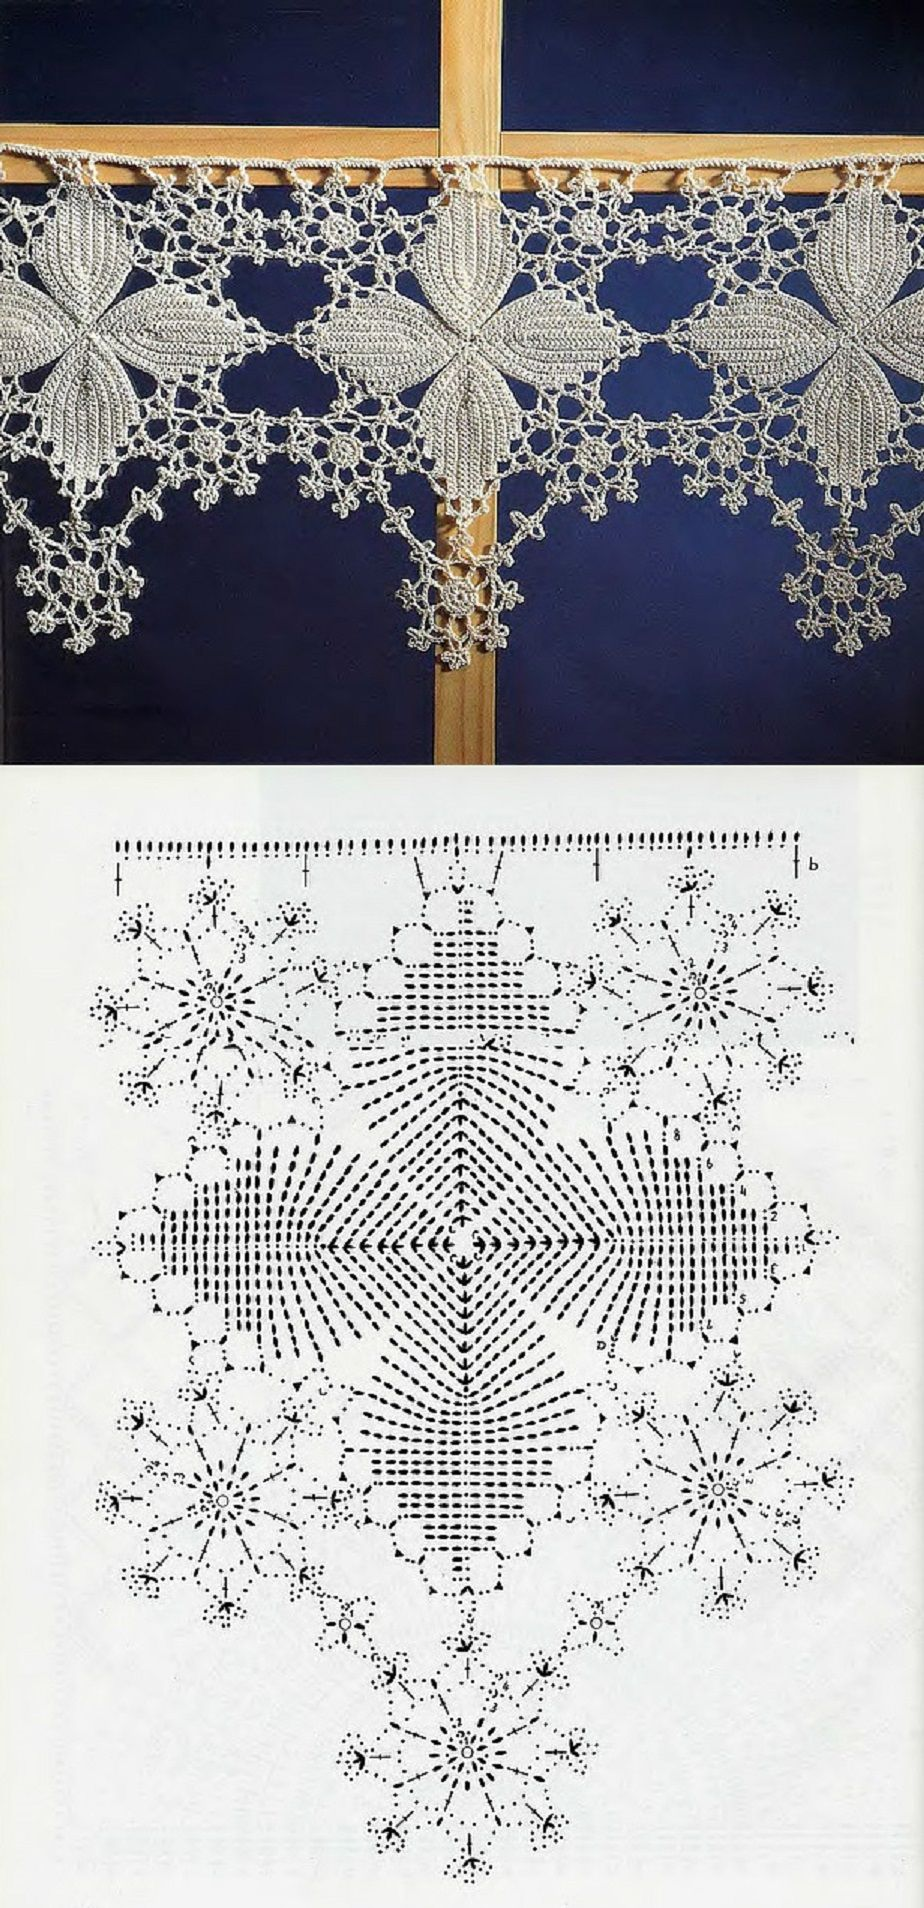 Daisy Crochet Edging With Diagram Crochet Edgings With Charts